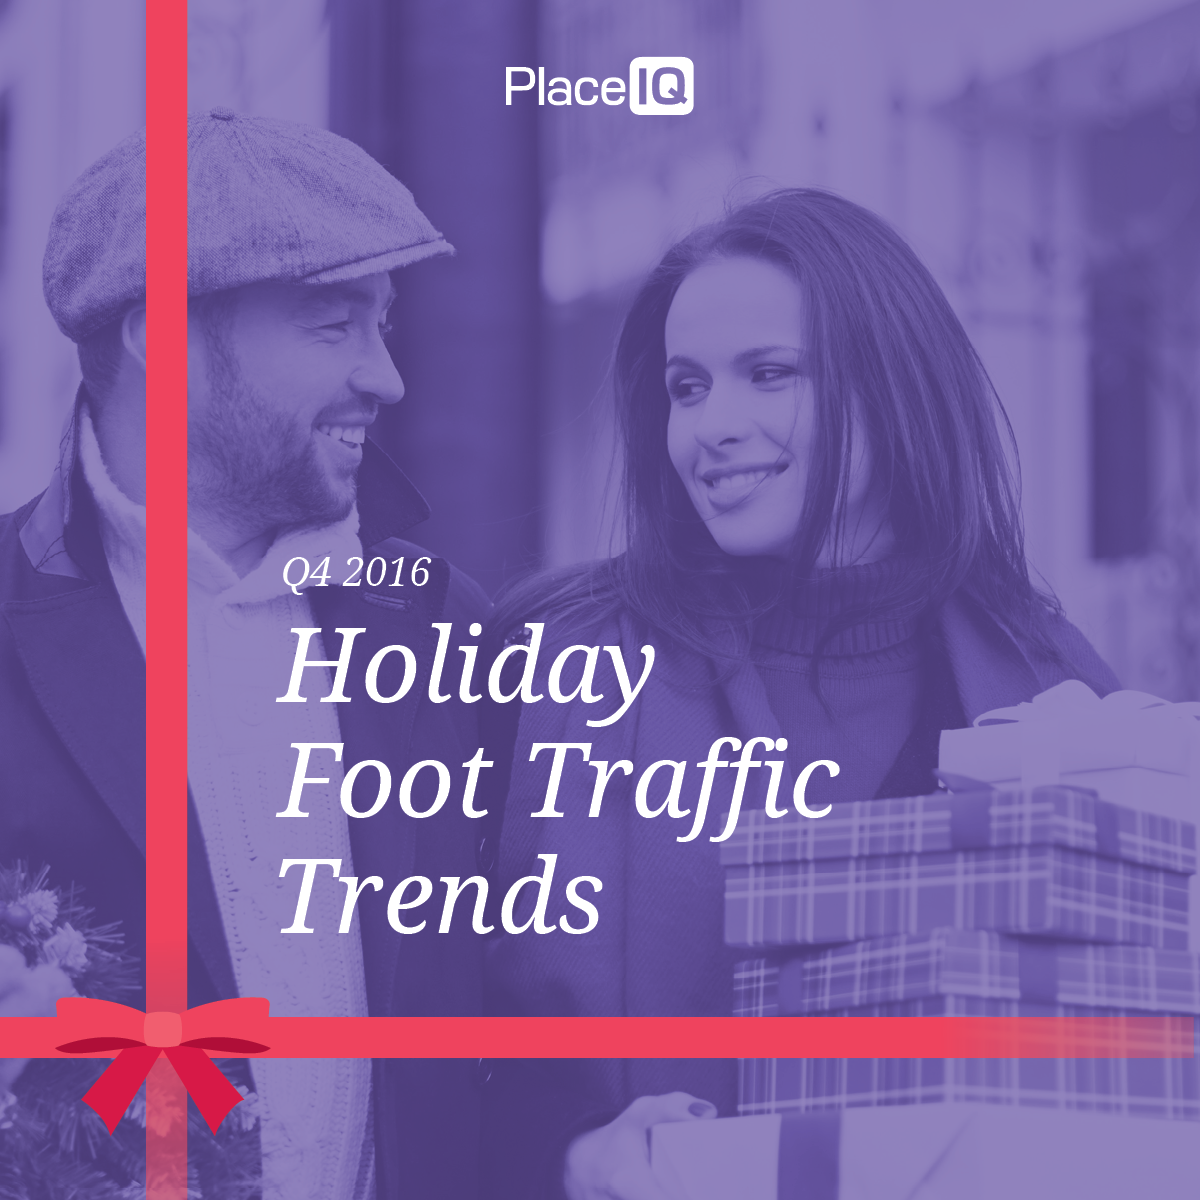 PlaceIQ 2016 Q4 Holiday Foot Traffic Trends